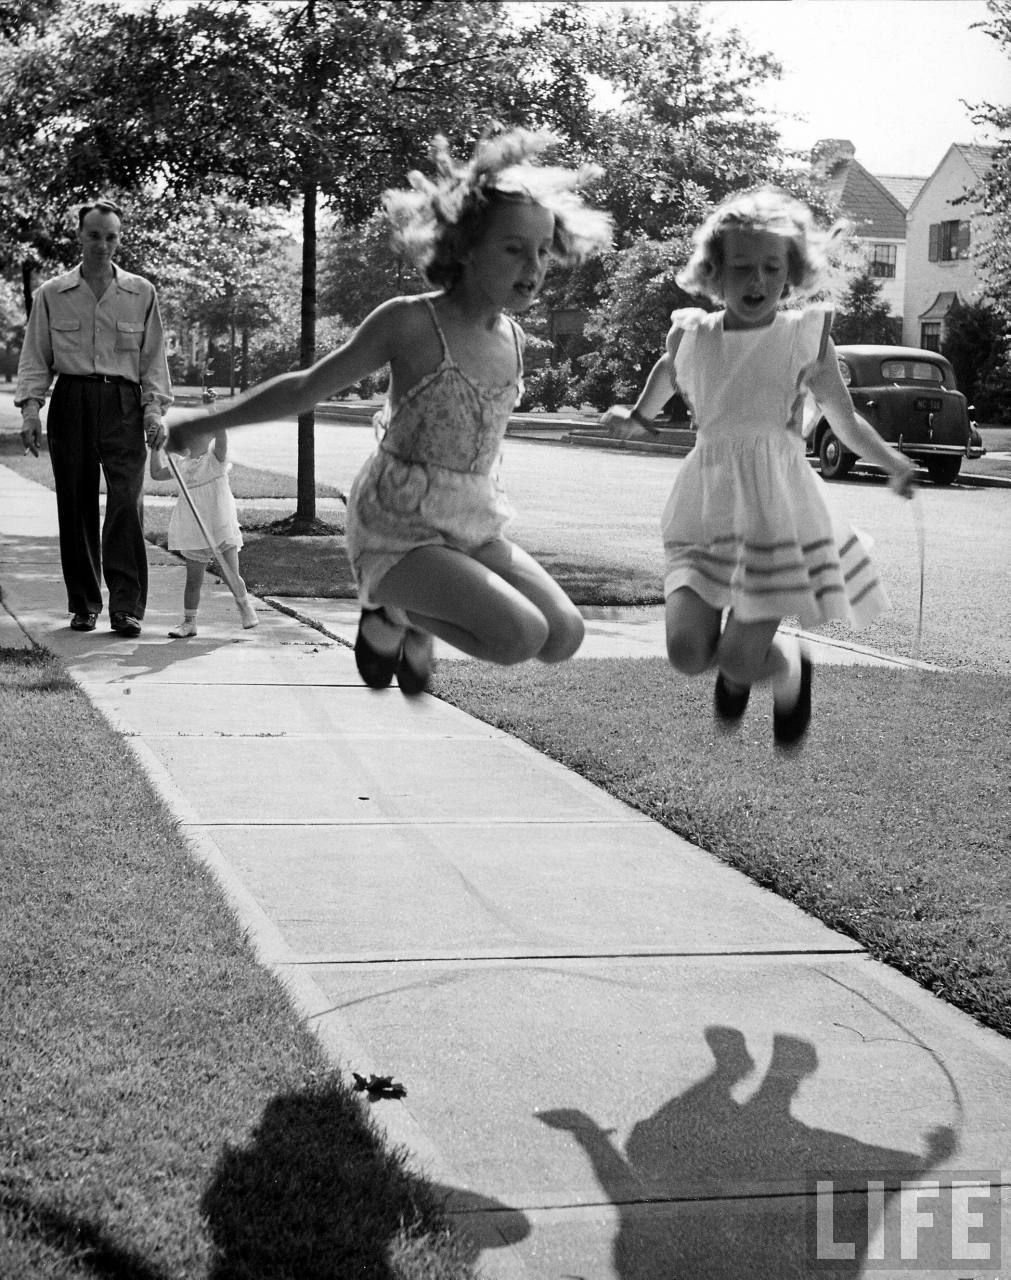 Jumproping. Us girls could always be found with a jump